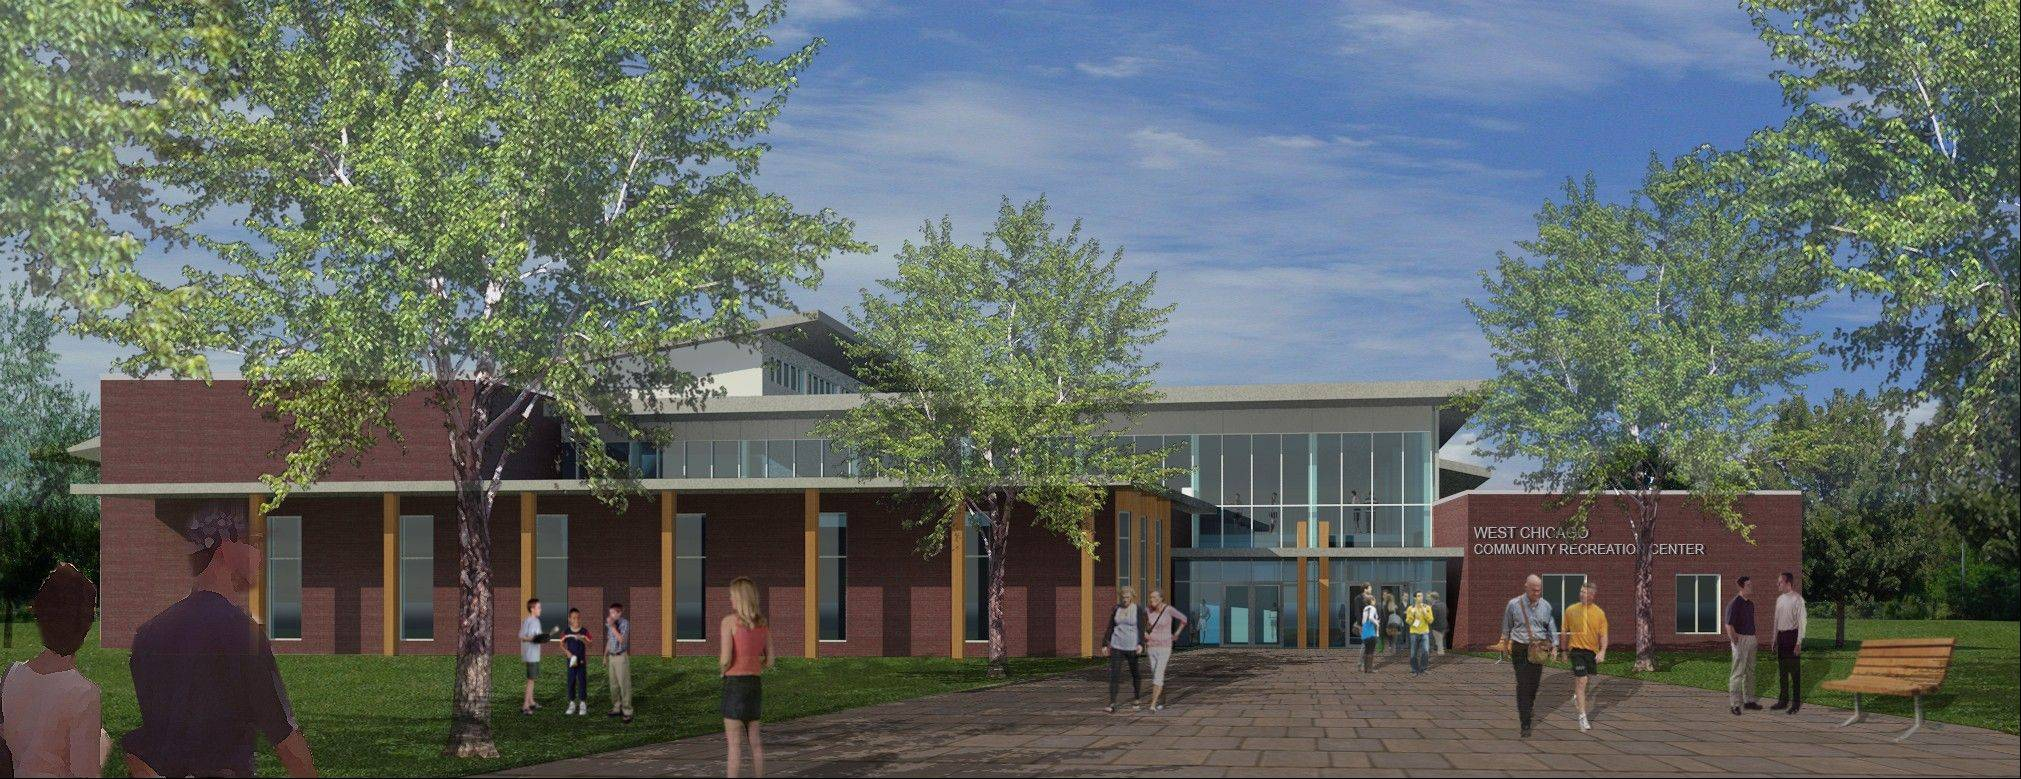 West Chicago Park District is seeking community input Aug. 14 on a revised proposal for a $15 million recreation center. Voters rejected a proposal in April to raise taxes to build a $19.9 million version of the center.